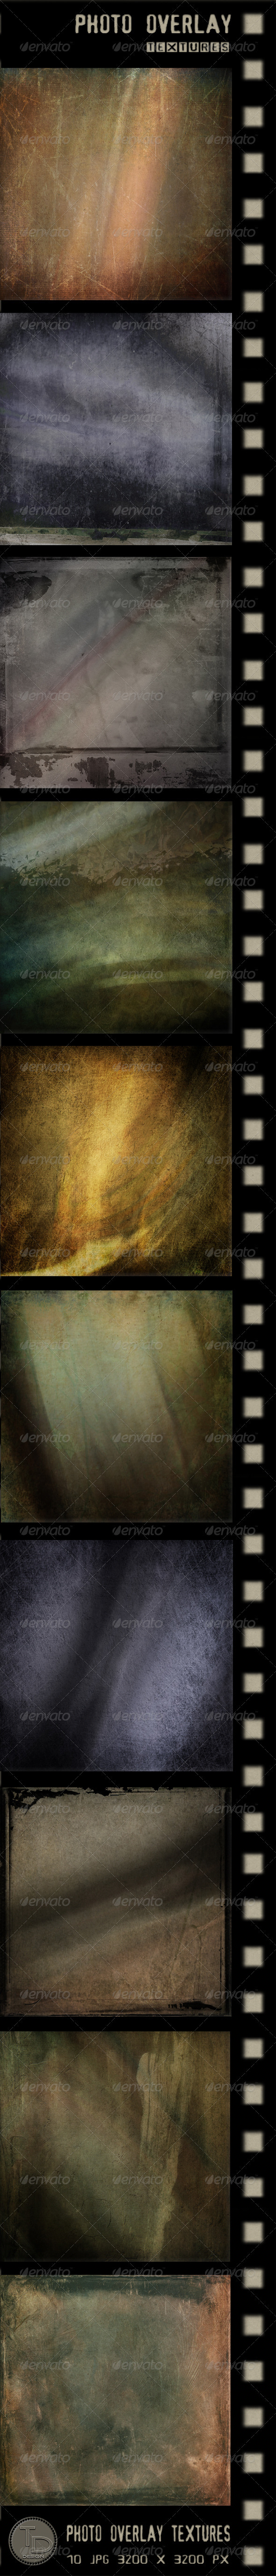 GraphicRiver Photo Overlay Textures 2580031